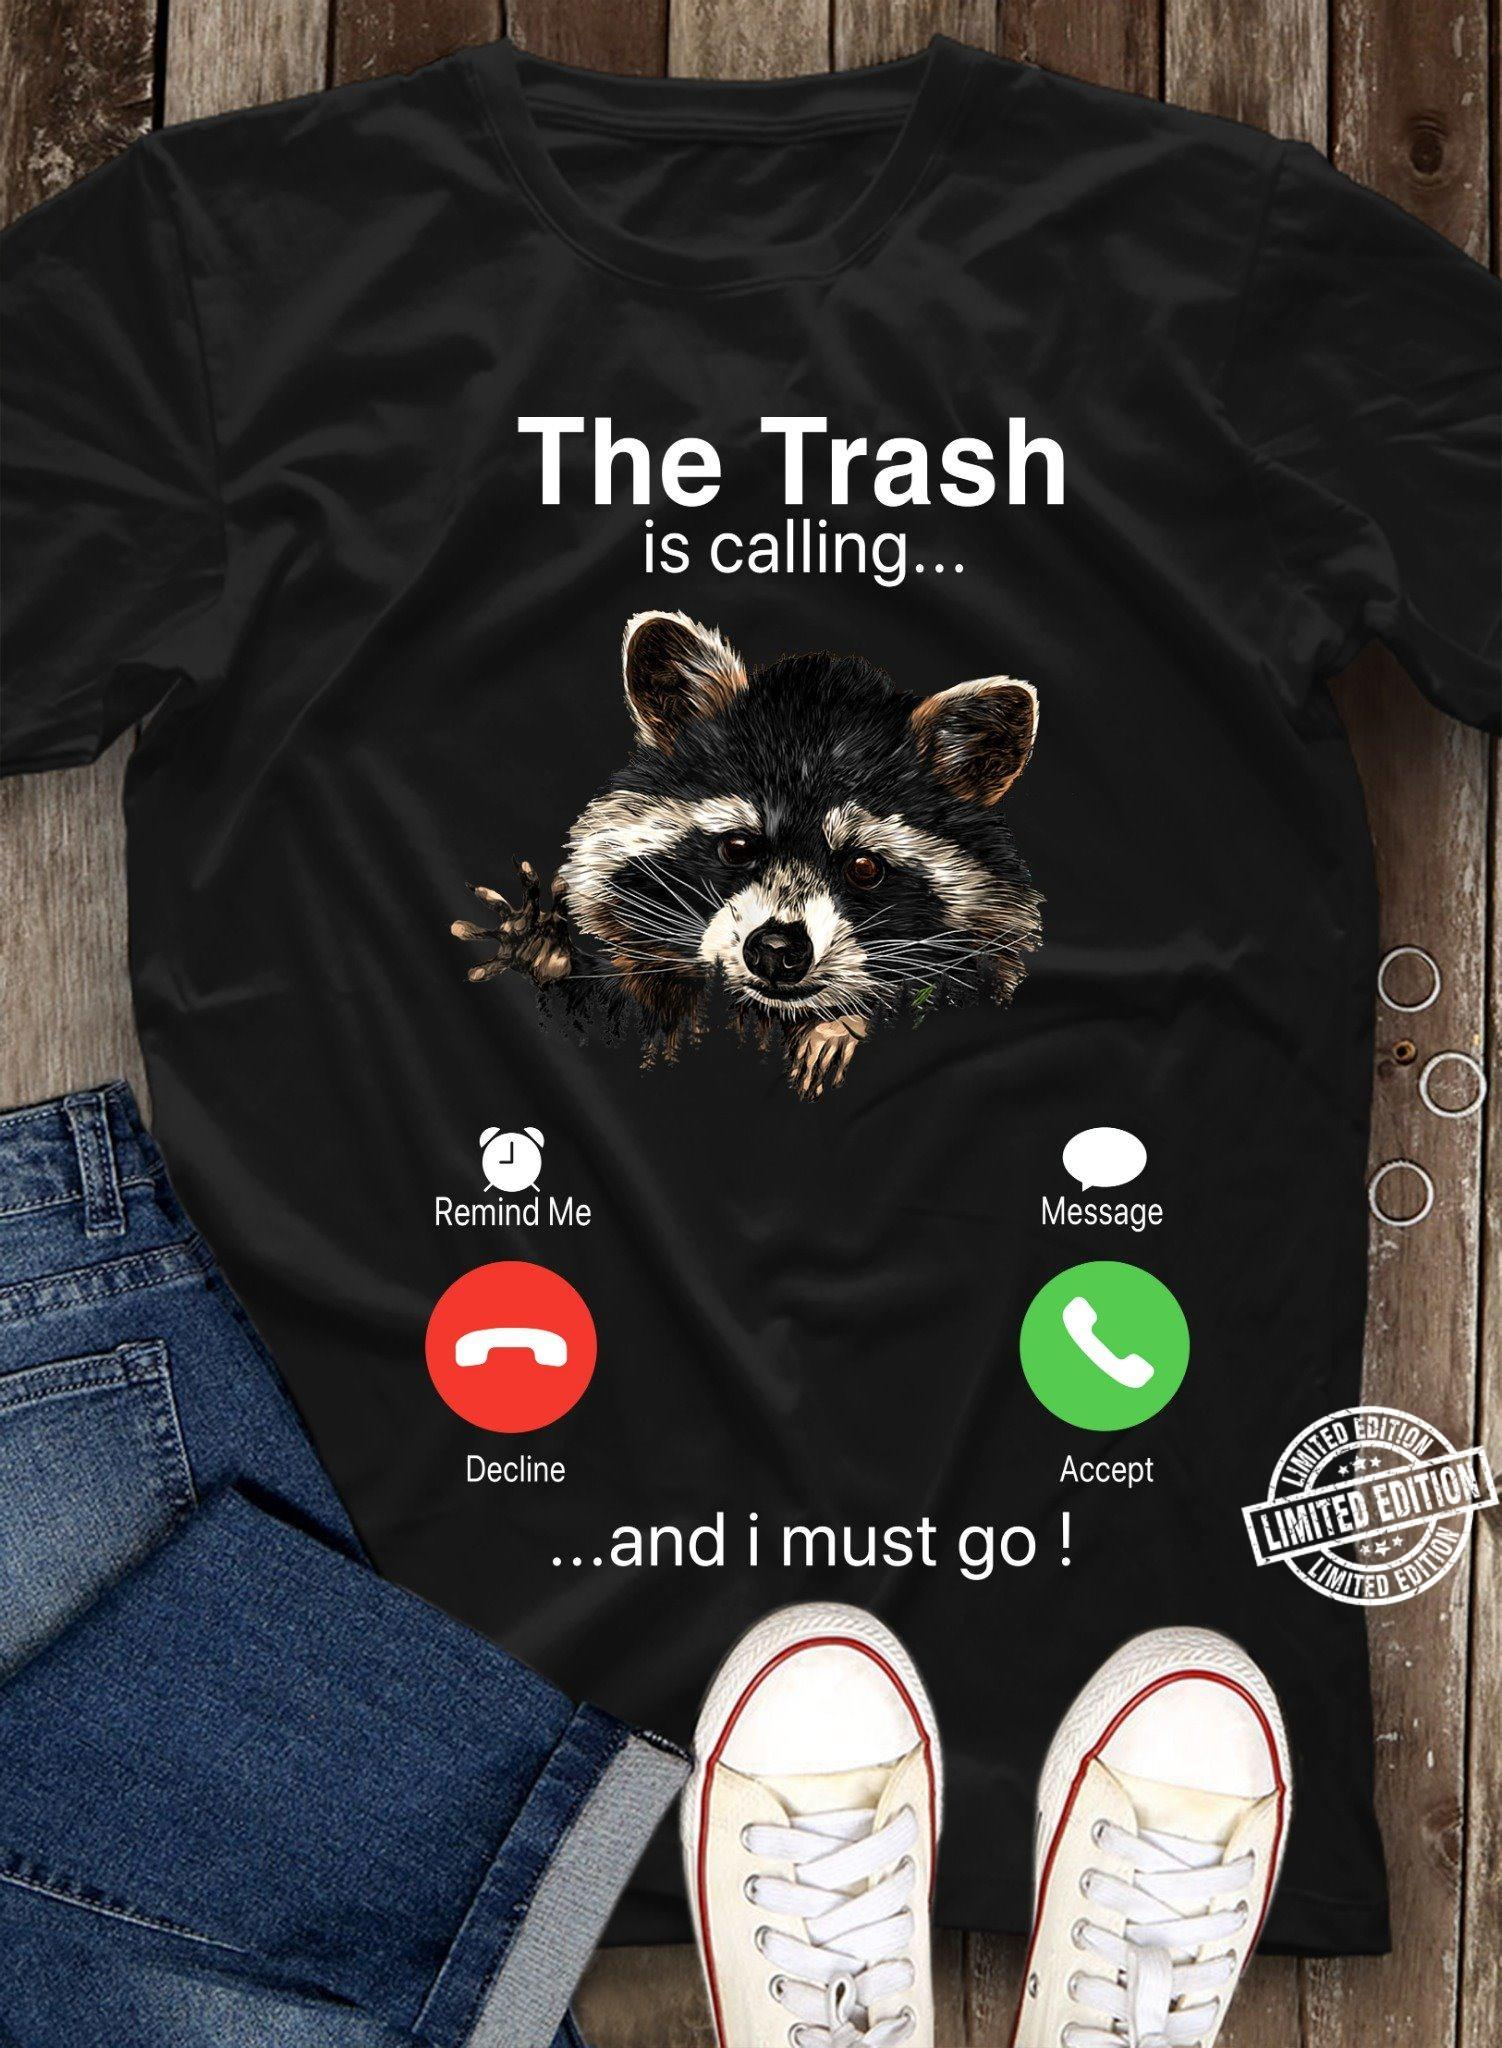 The Trash is calling and I must go shirt